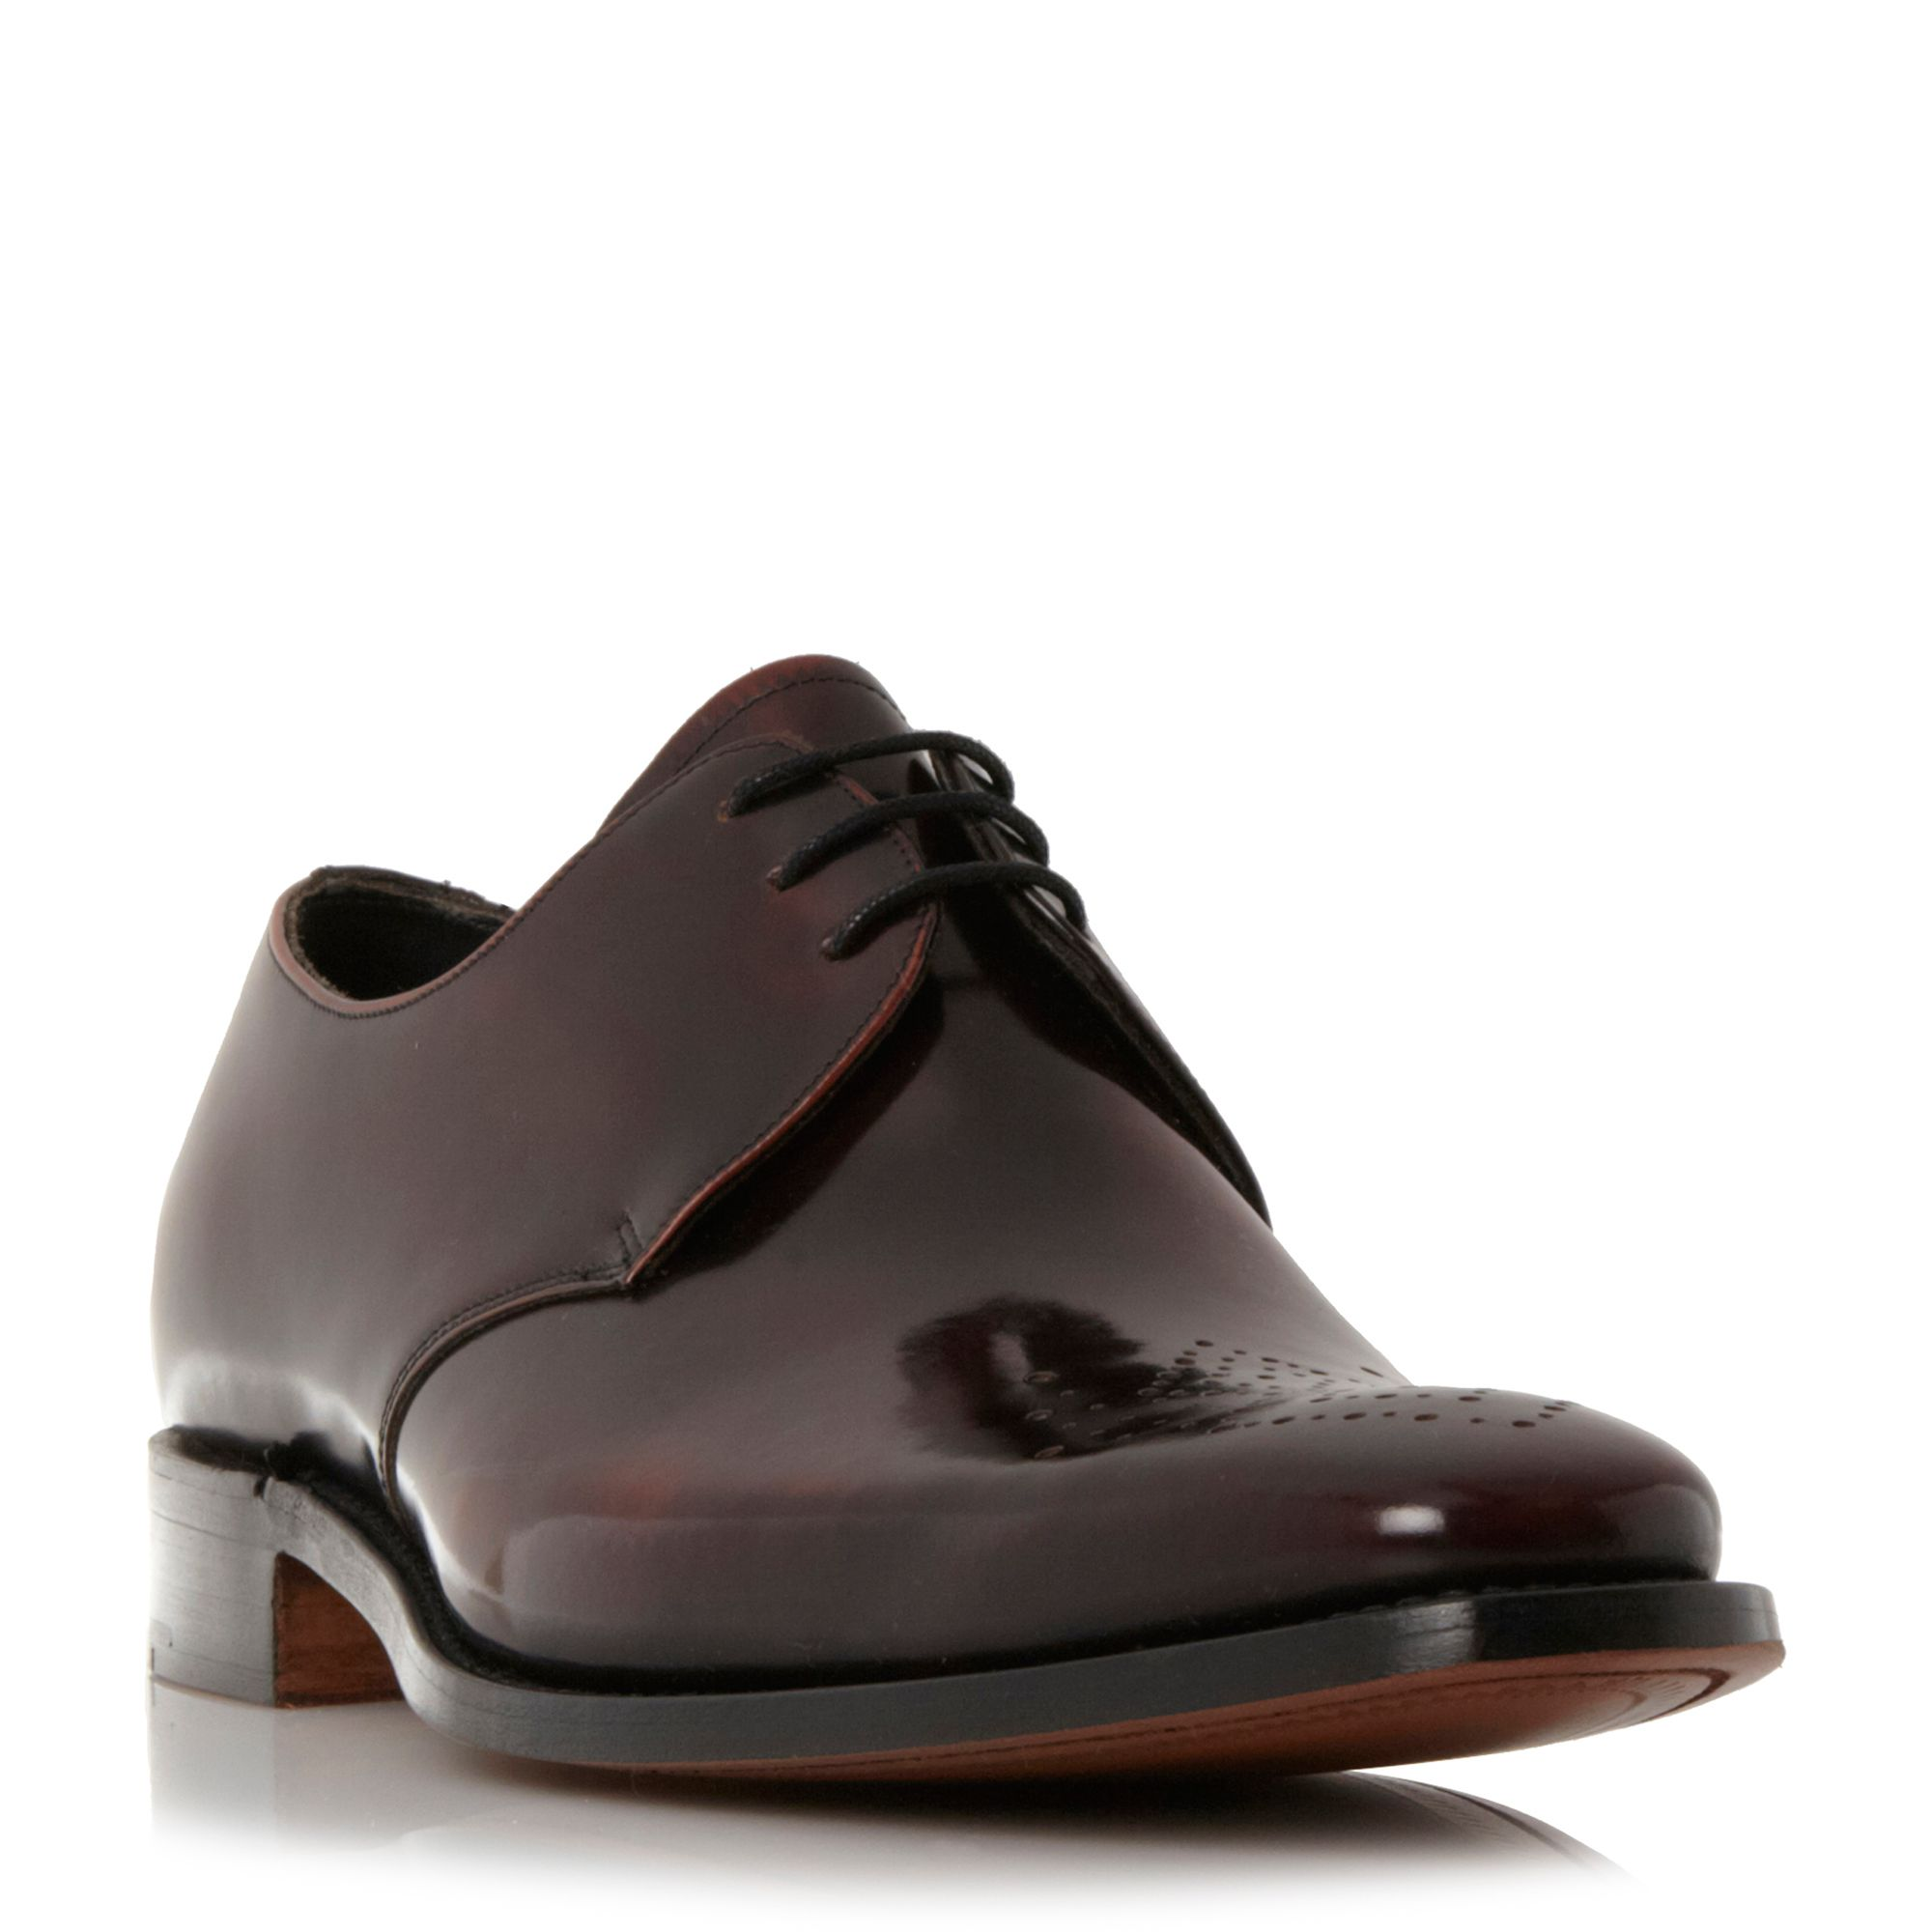 Barker Barker Darlington punched toe gibson shoes, Brown